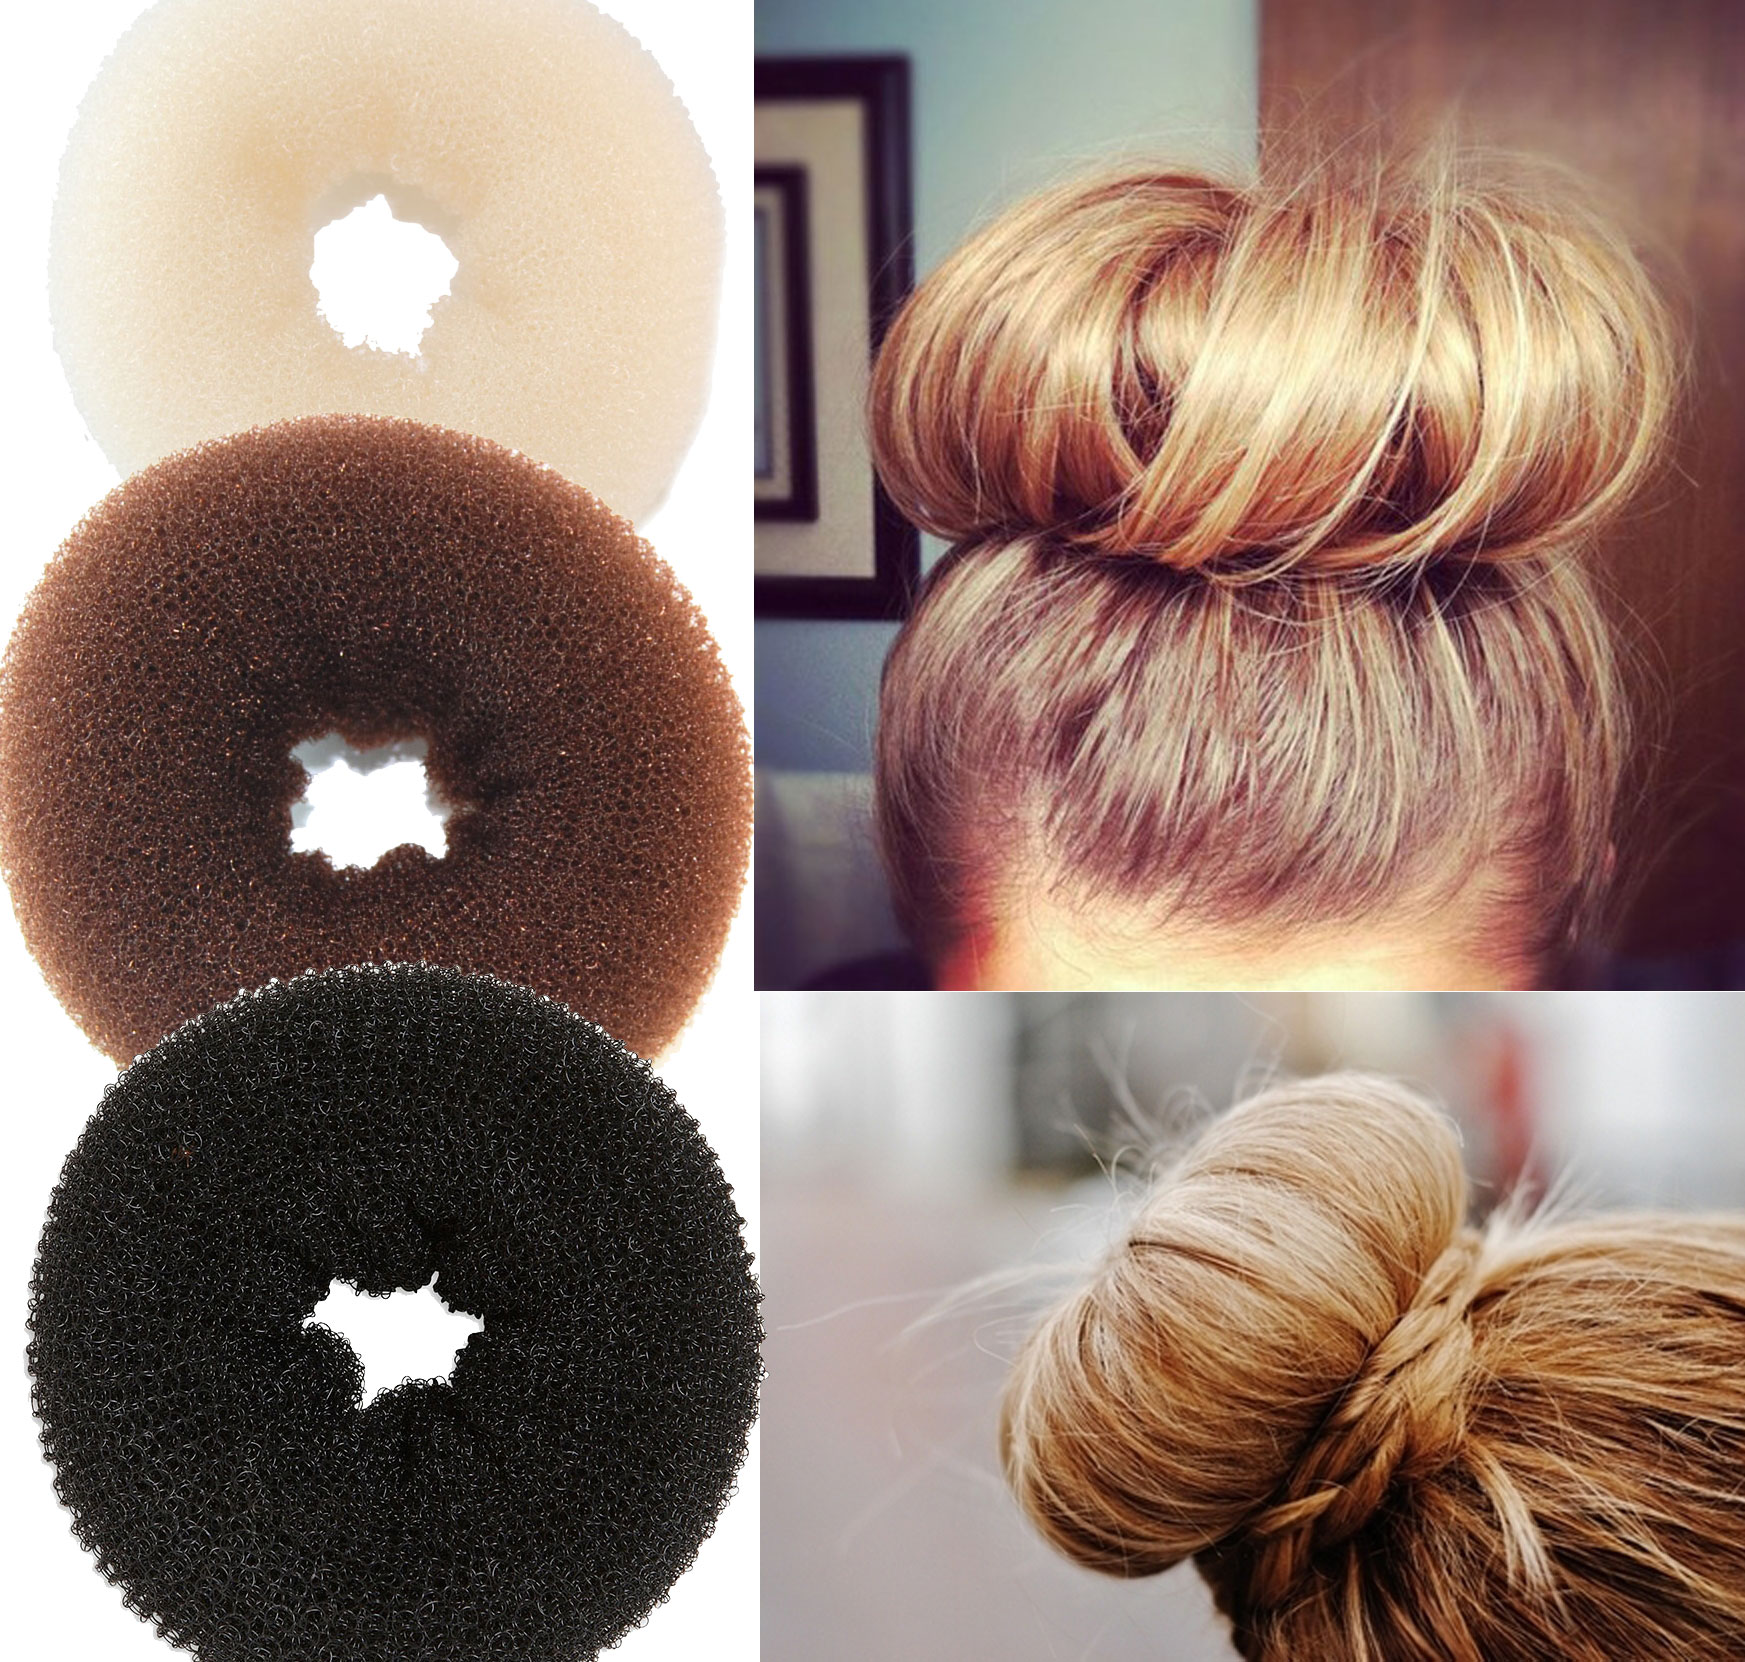 Find and save ideas about Donut bun on Pinterest. | See more ideas about Hair donut styles, The bun and Doughnut bun.